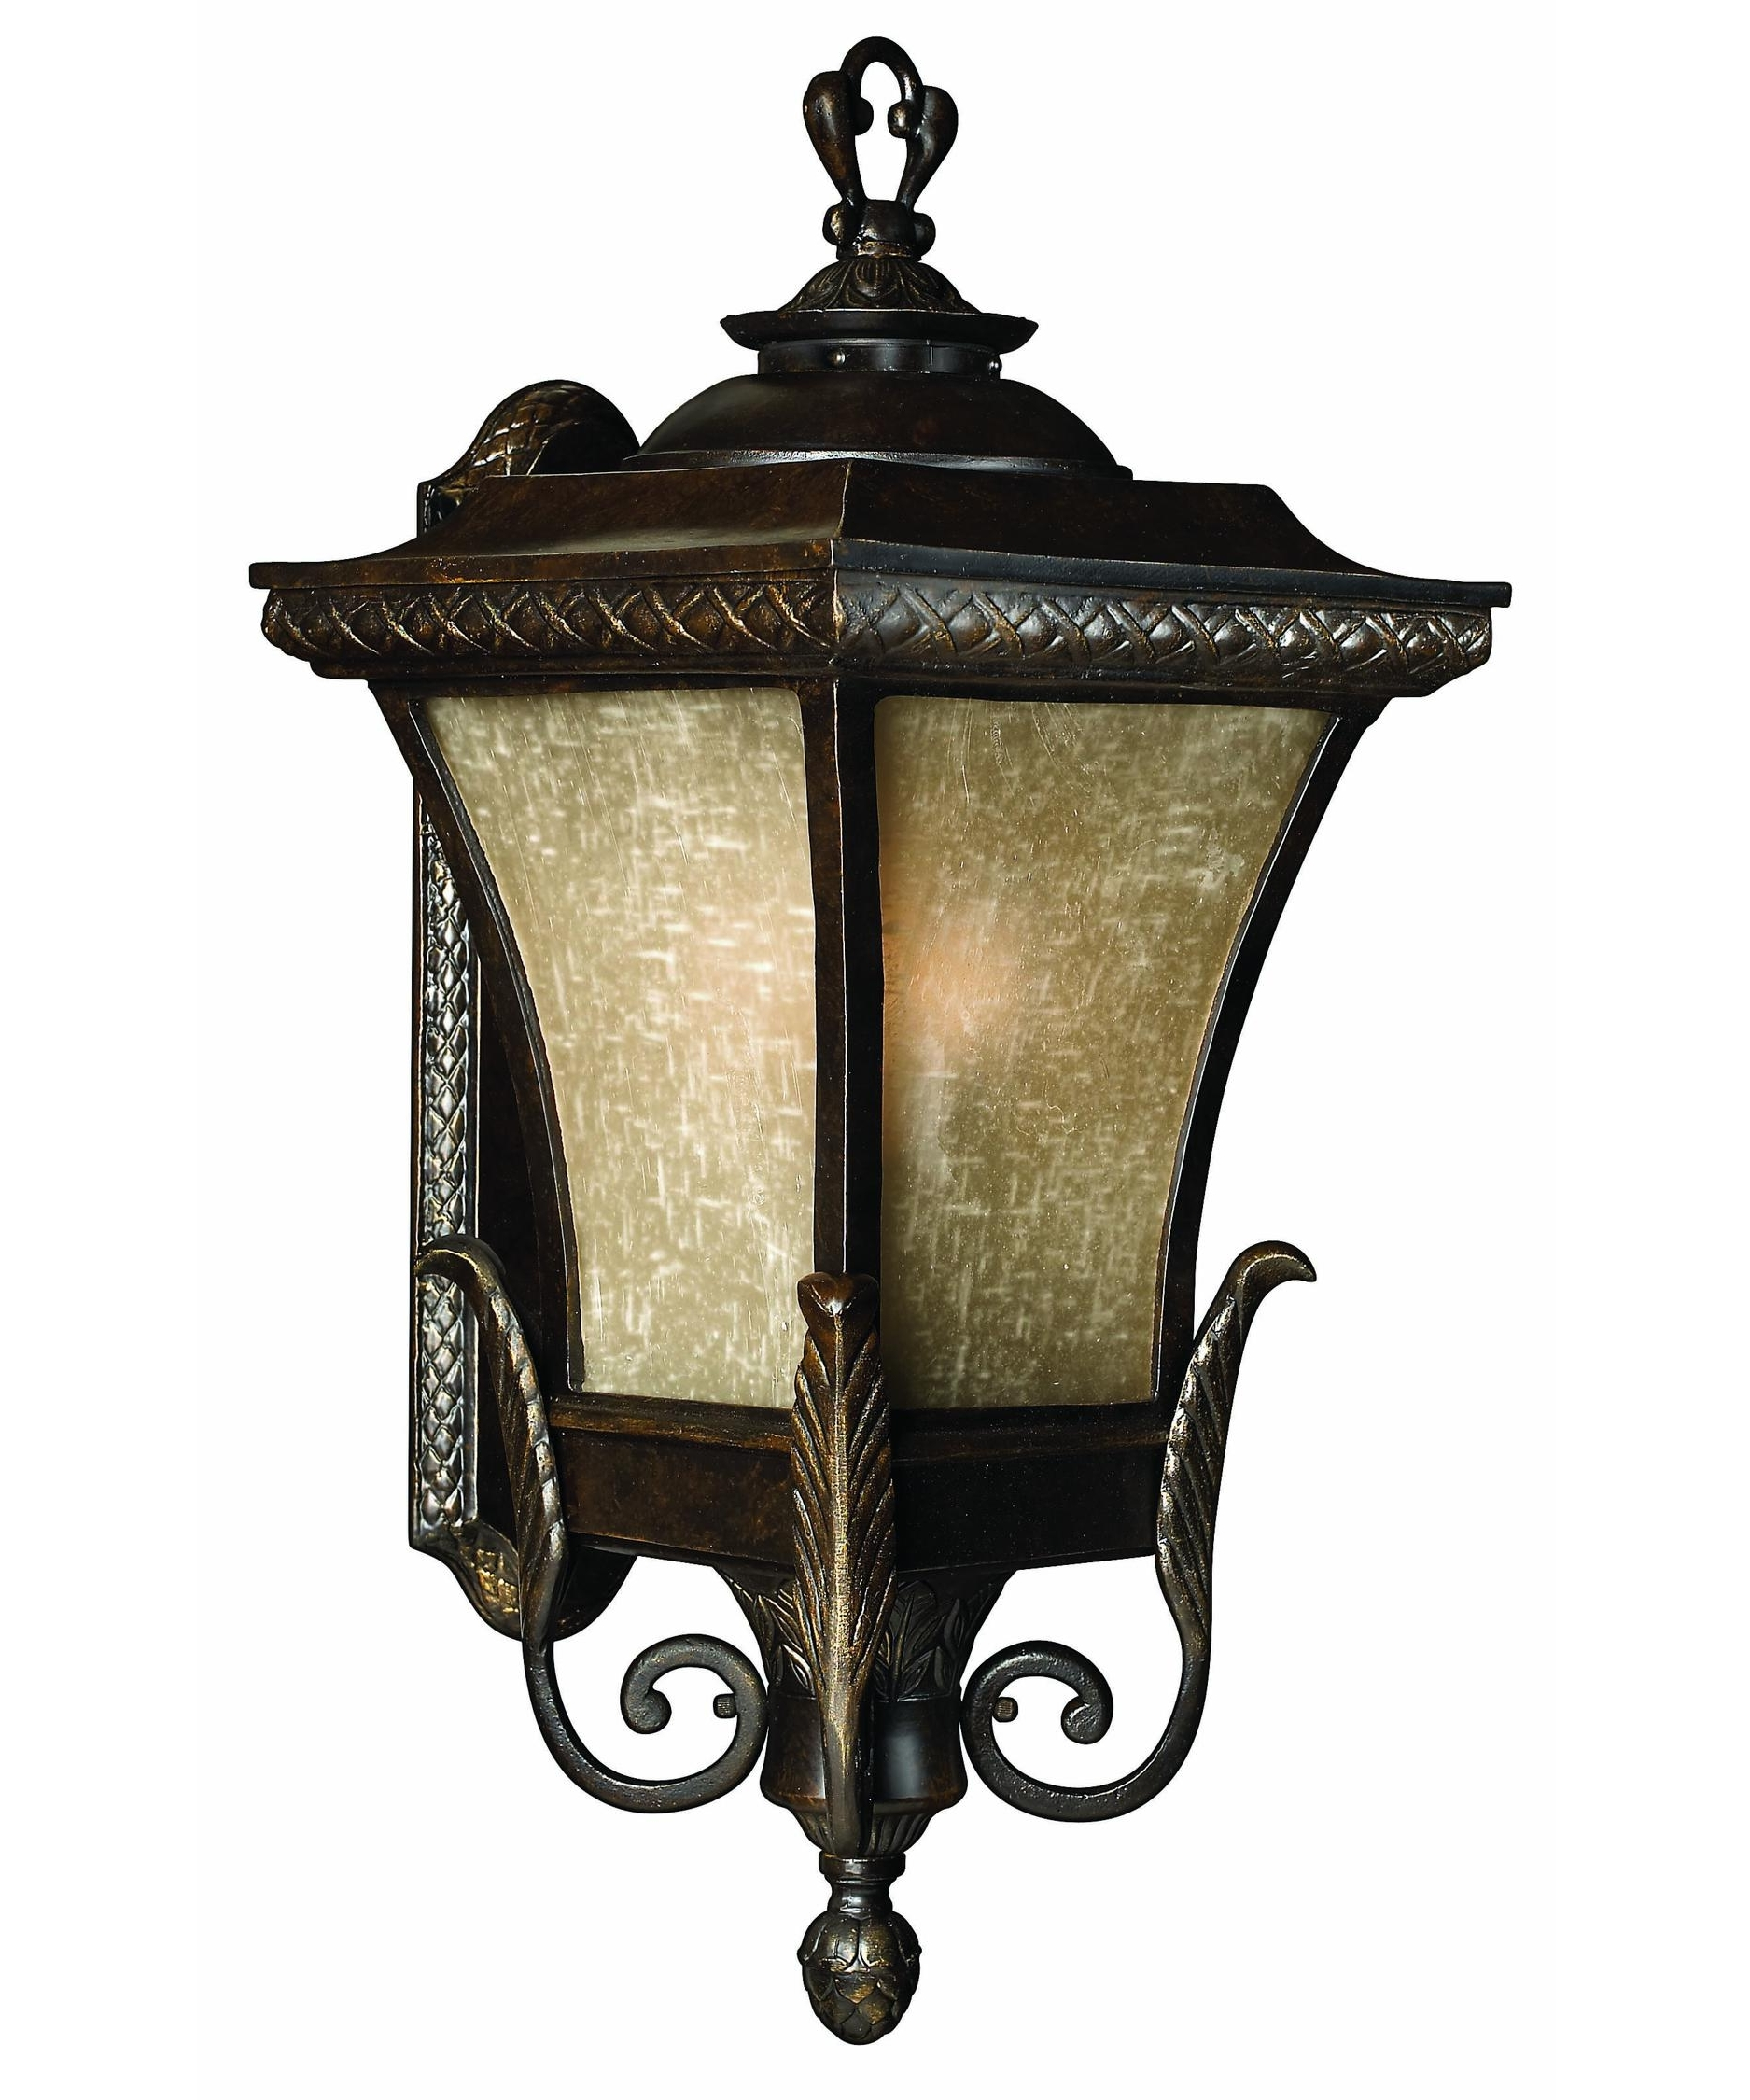 Extra Large Wall Mount Porch Hinkley Lighting Inside Preferred Hinkley Lighting 1935 Brynmar 12 Inch Wide 1 Light Outdoor Wall (View 6 of 20)